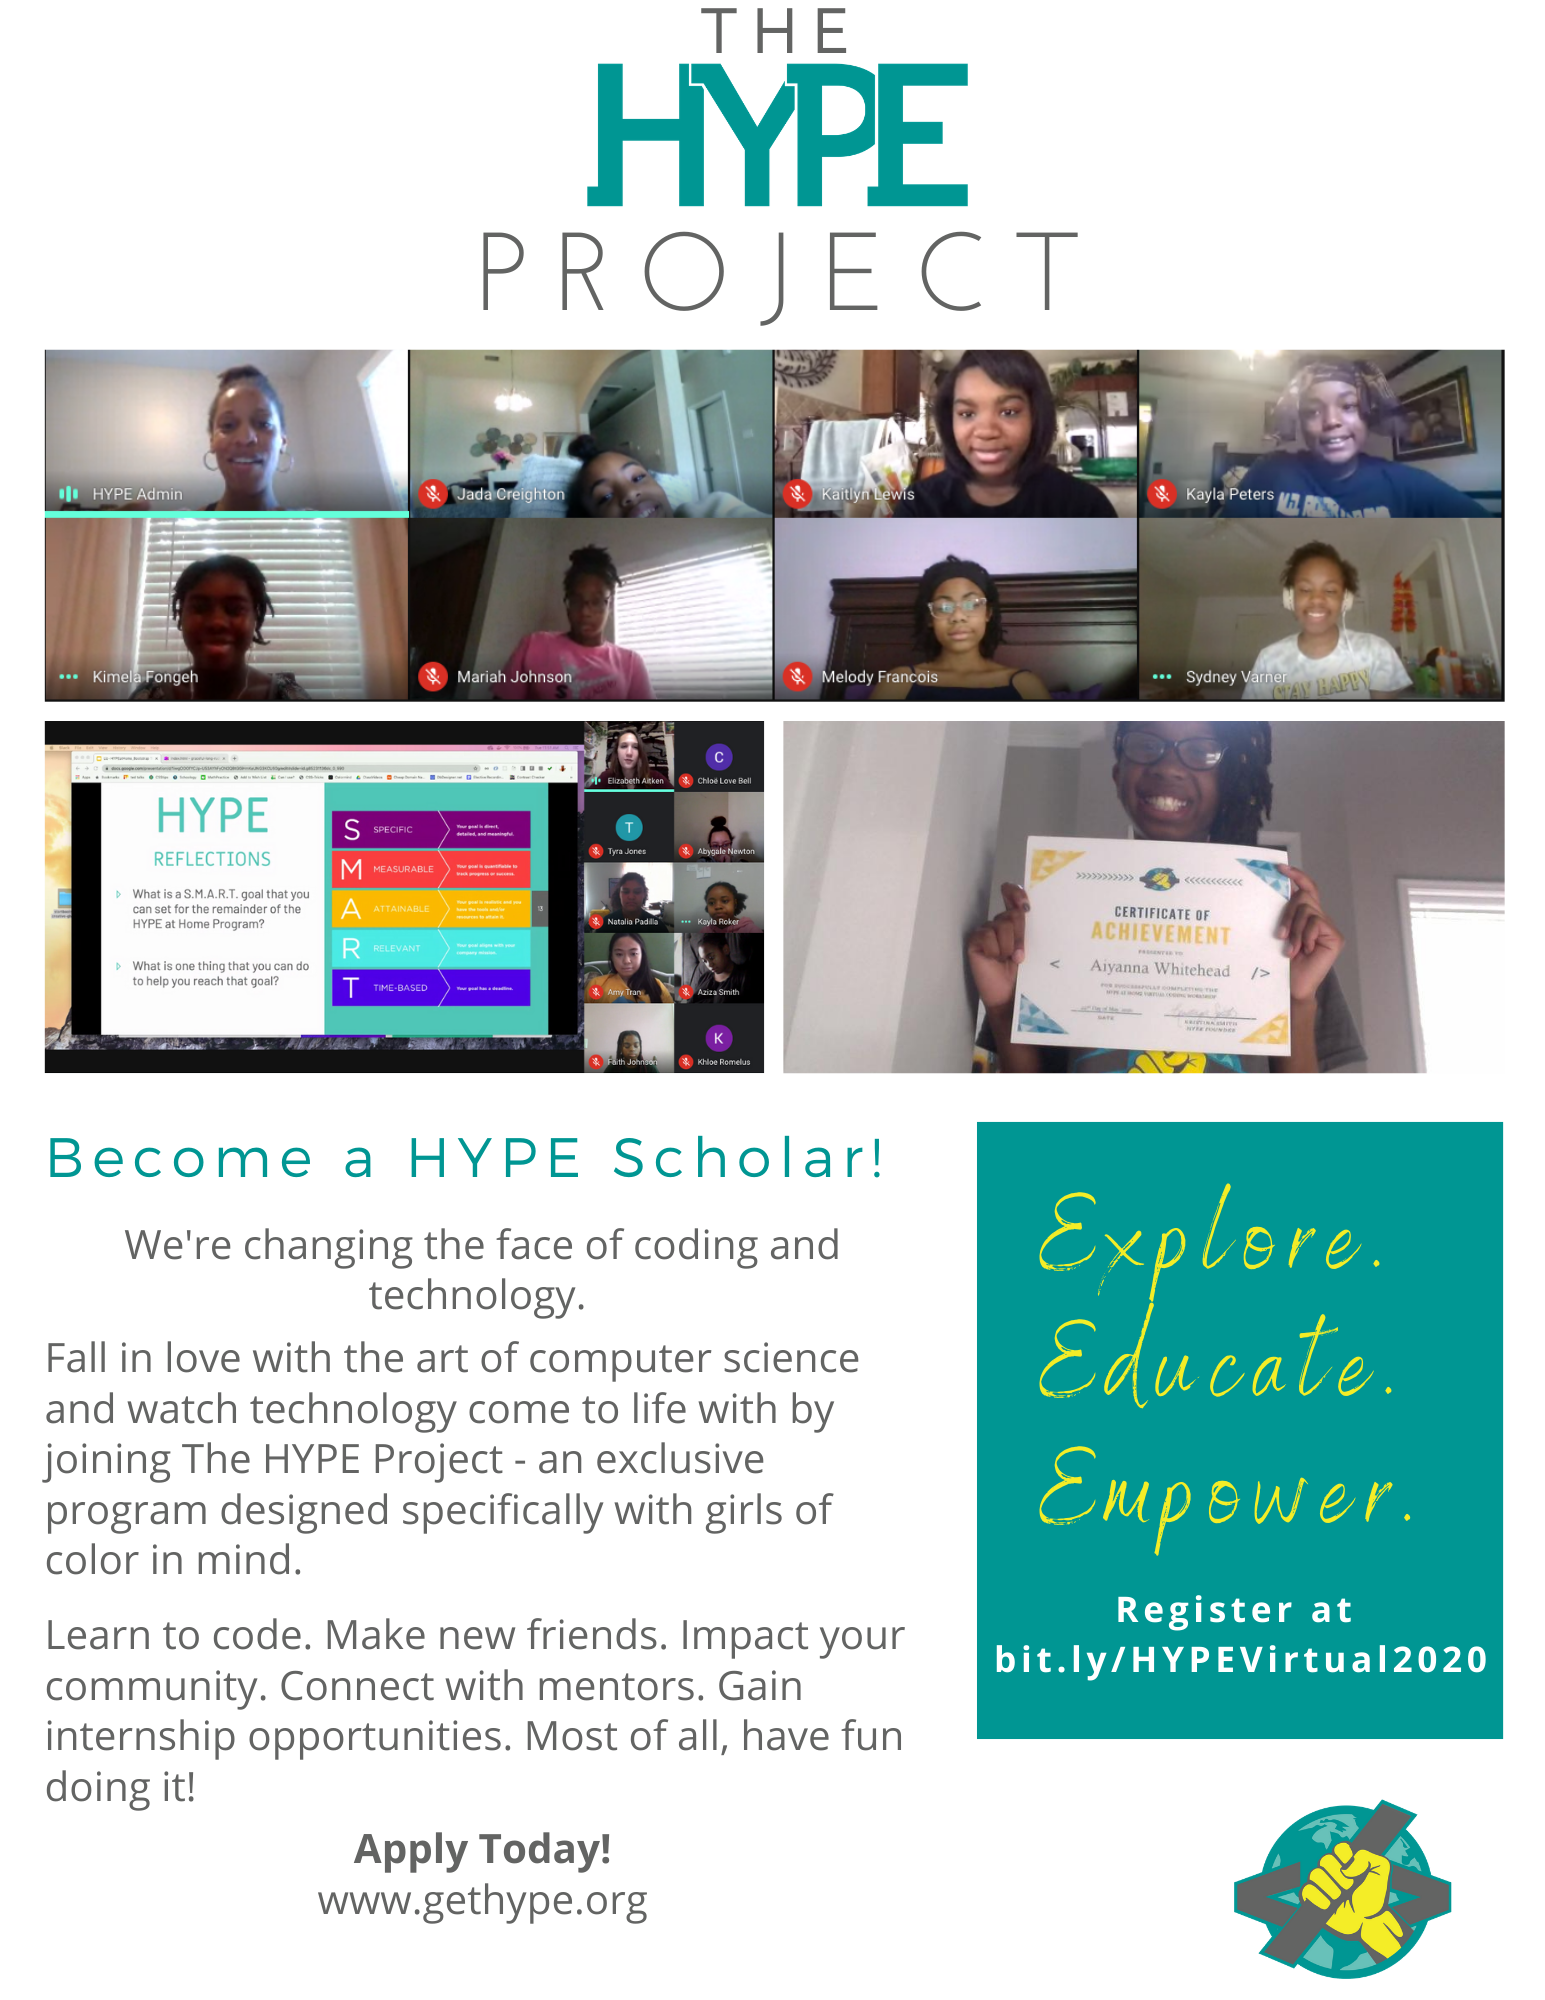 HYPE Project Recruitment Flyer